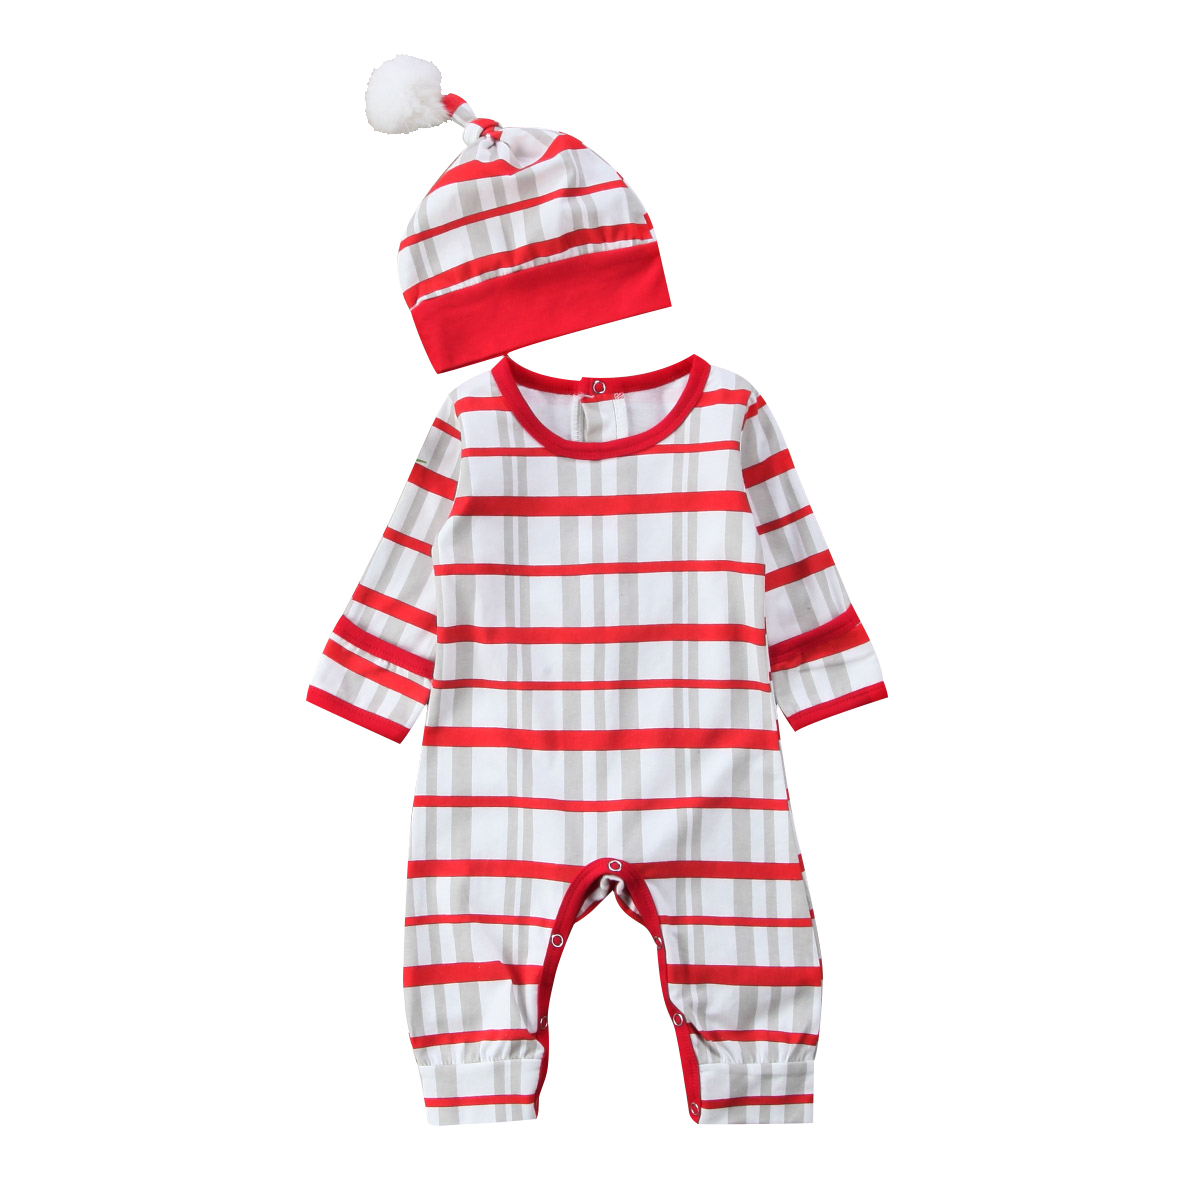 2018 New Newborn Baby Clothes Set Plaid 2PCS/Set Baby Clothing Cotton Long Sleeve Rompers Jumpersuit + Cut Hat